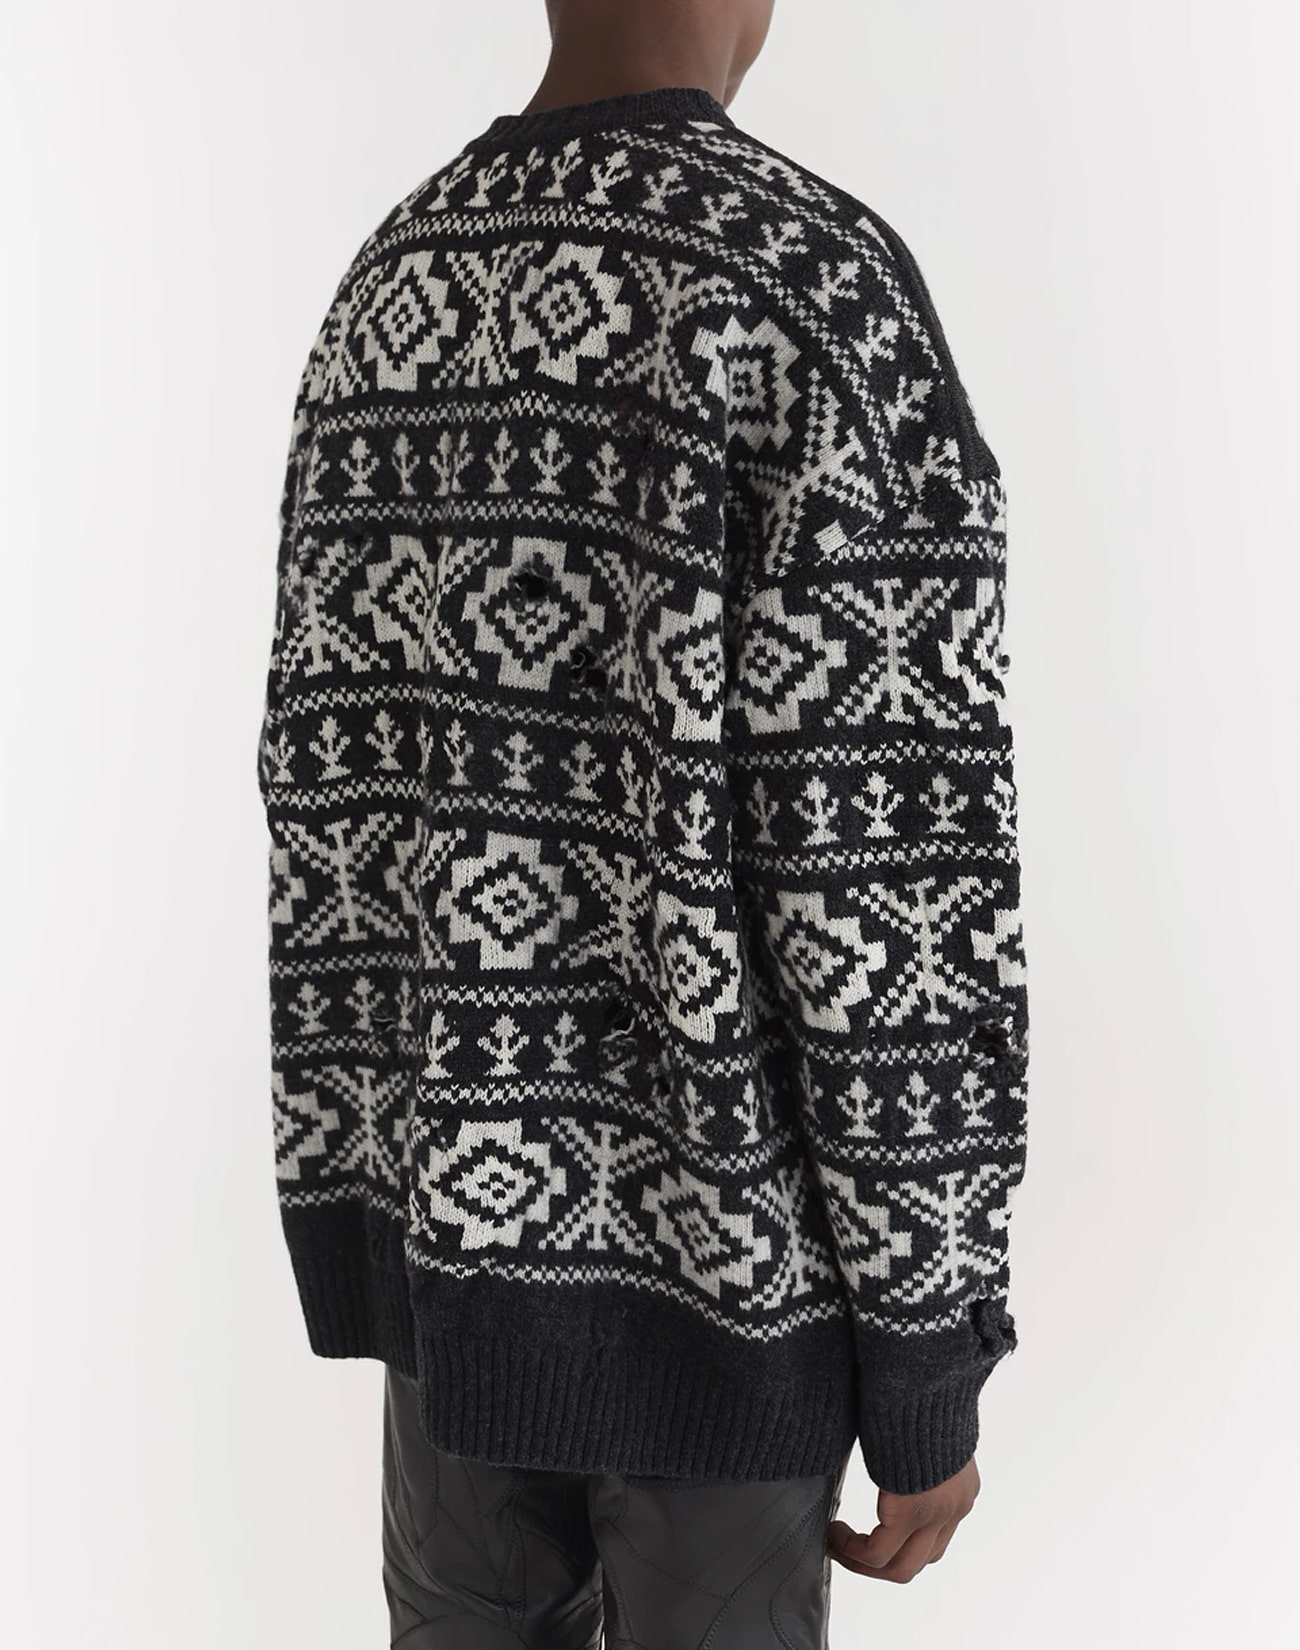 Koumern check Knit